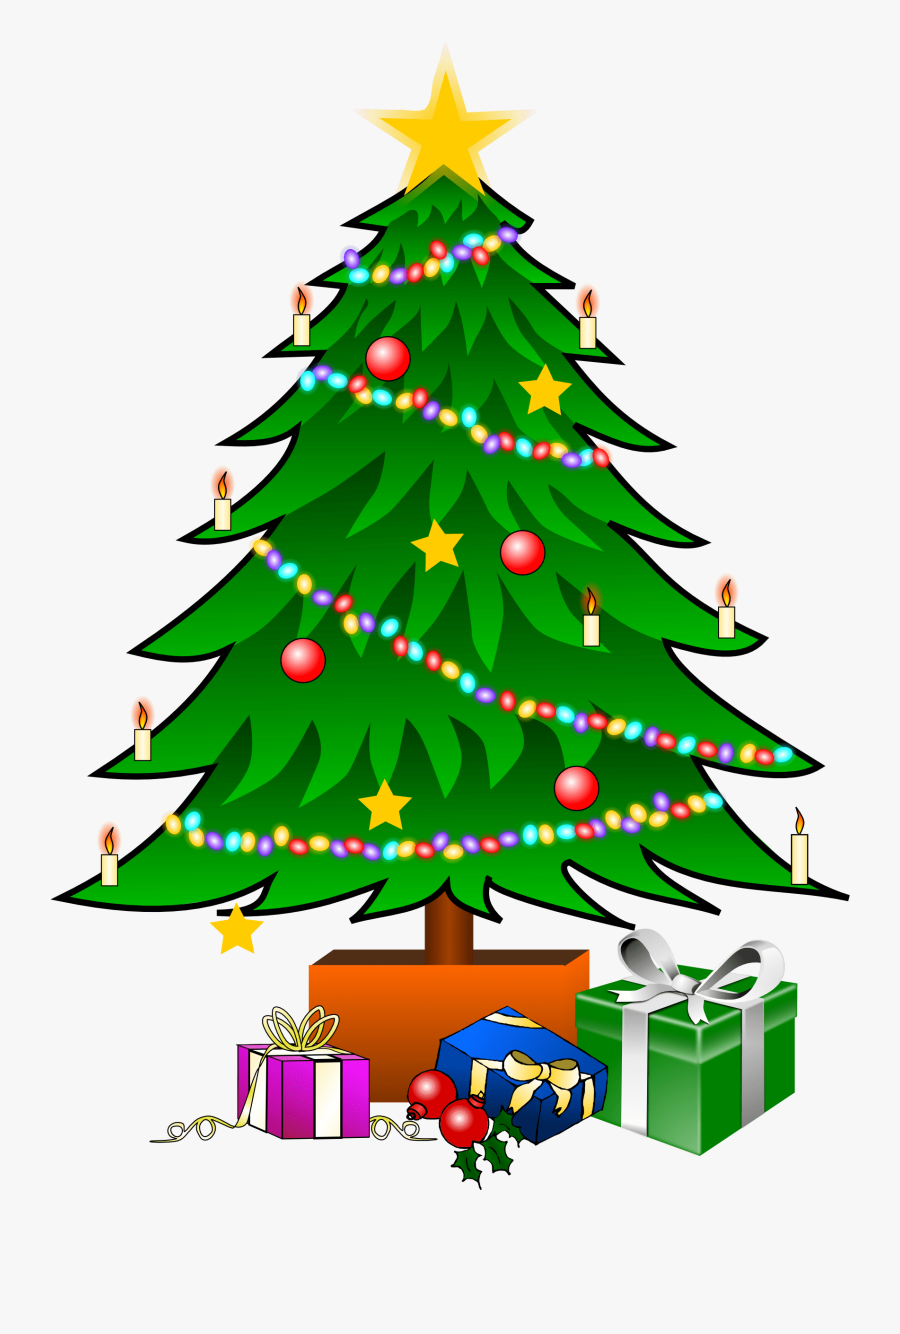 This Nice Christmas Tree With Presents Clip Art Can - X Mas Tree Clipart, Transparent Clipart